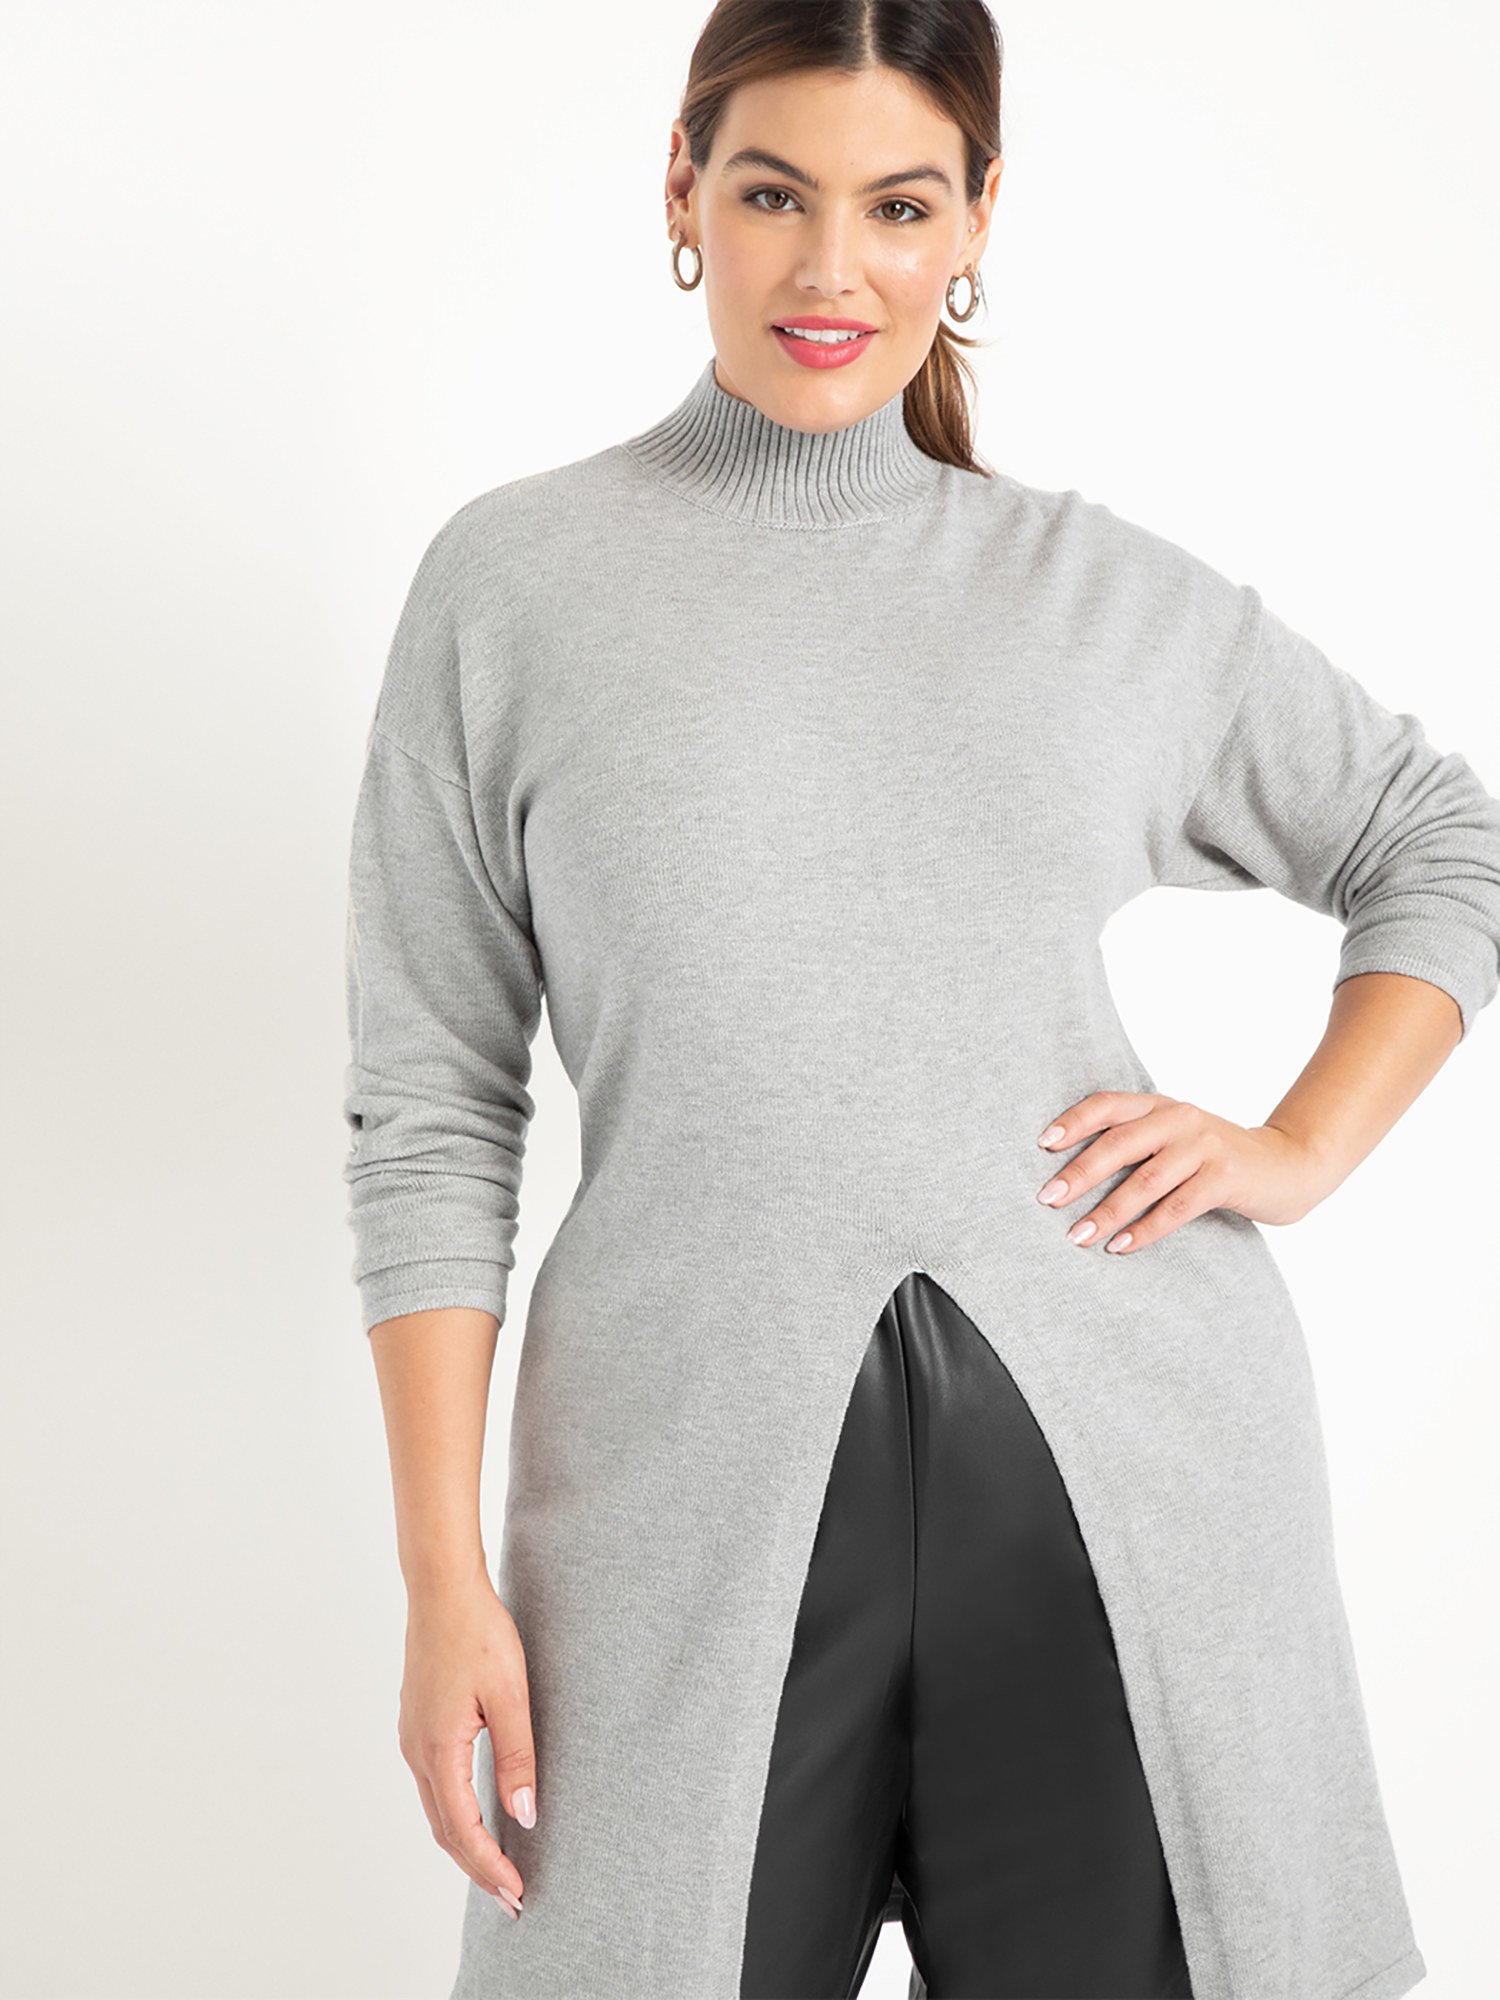 Model wearing grey mock neck tunic top with split front